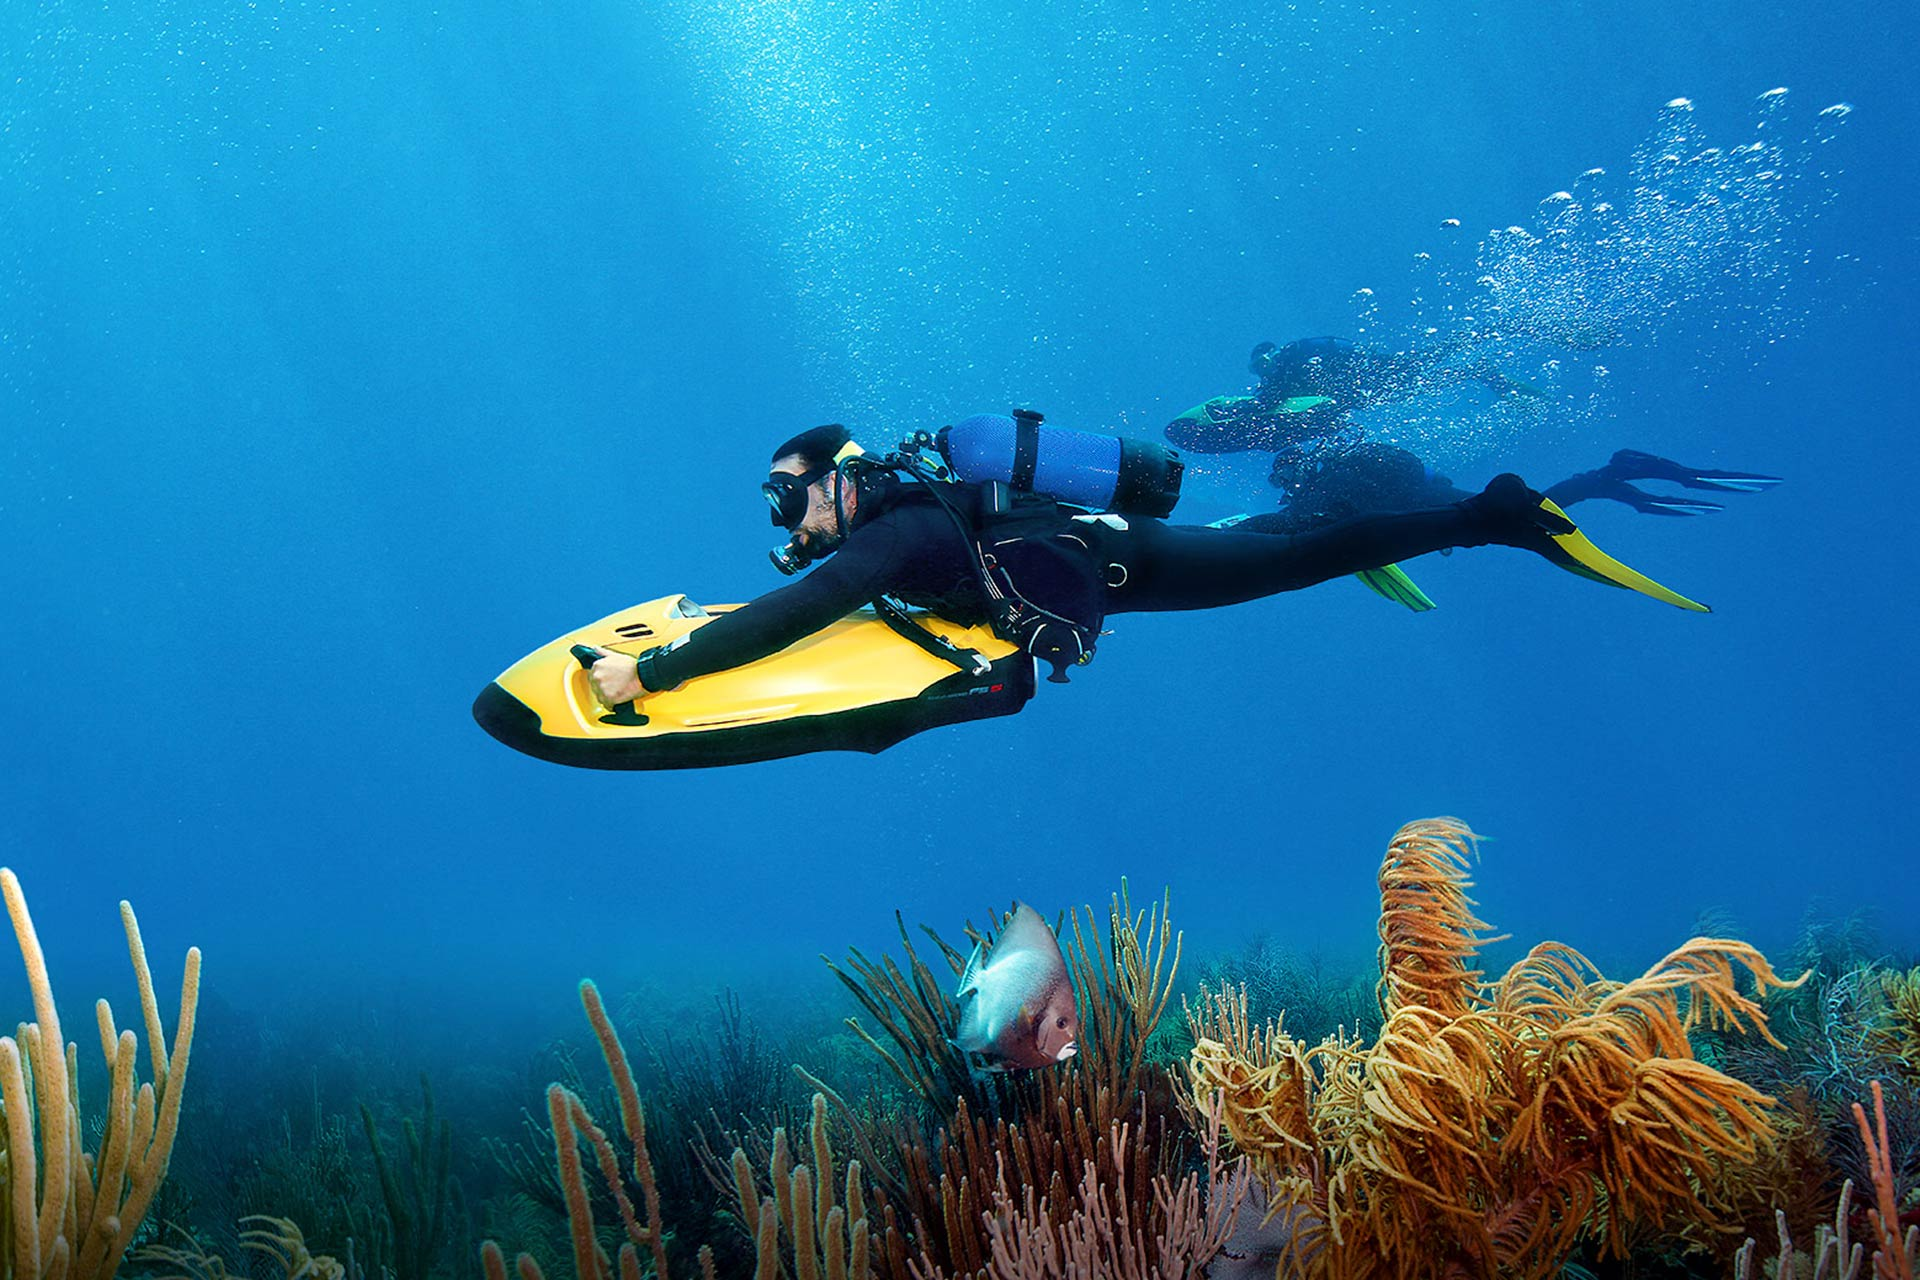 SEABOB diving under water